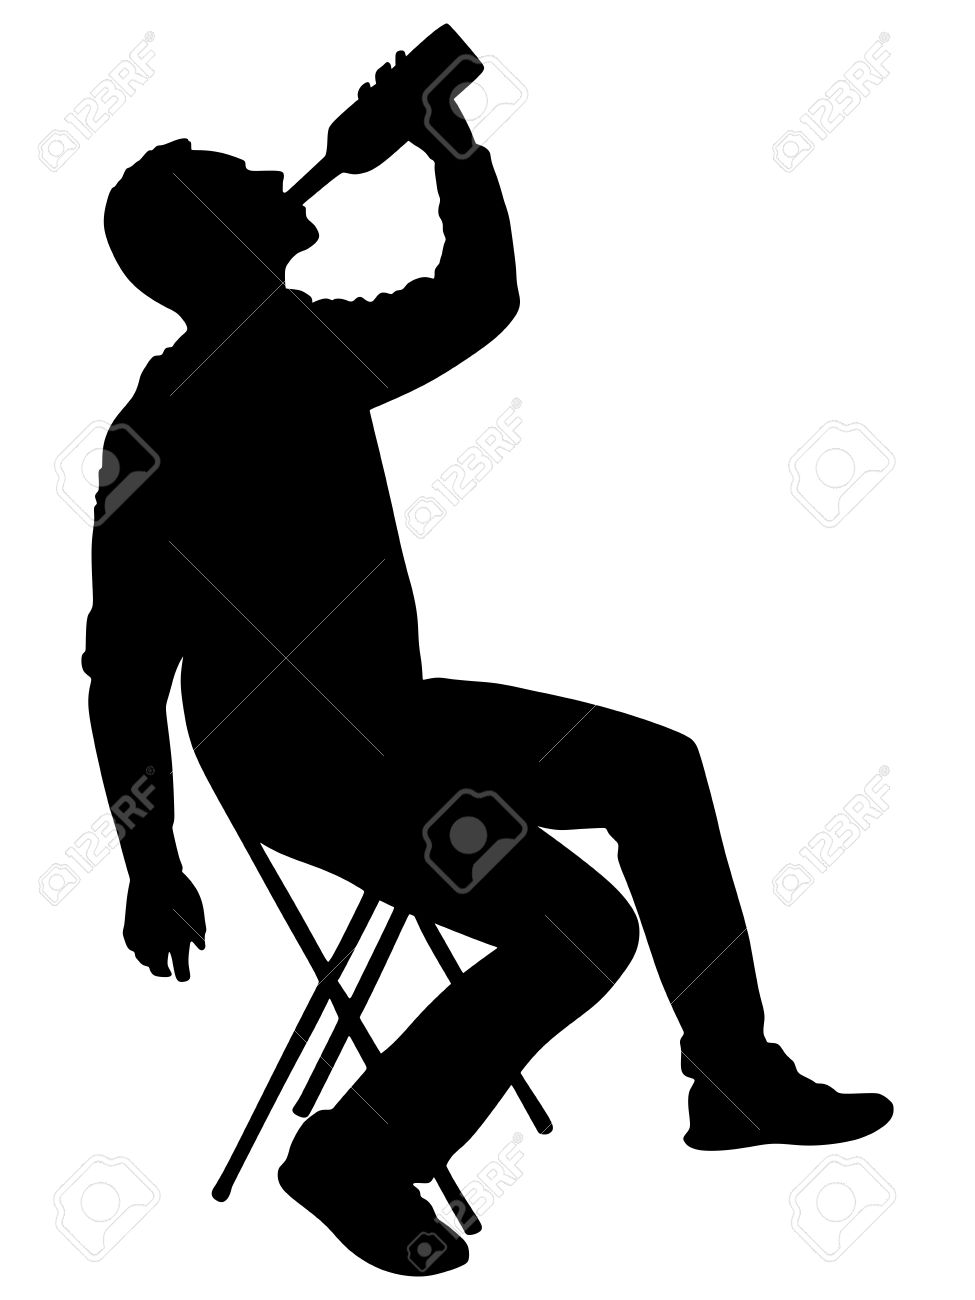 55657878-silhouette-of-alcoholic-drunk-man-vector